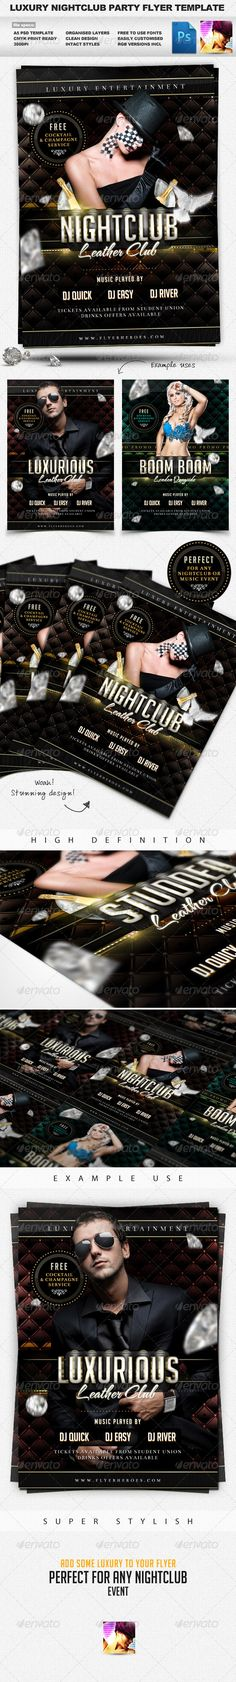 Business flyer by Snita on @creativemarket Awesome Flyer - example flyer